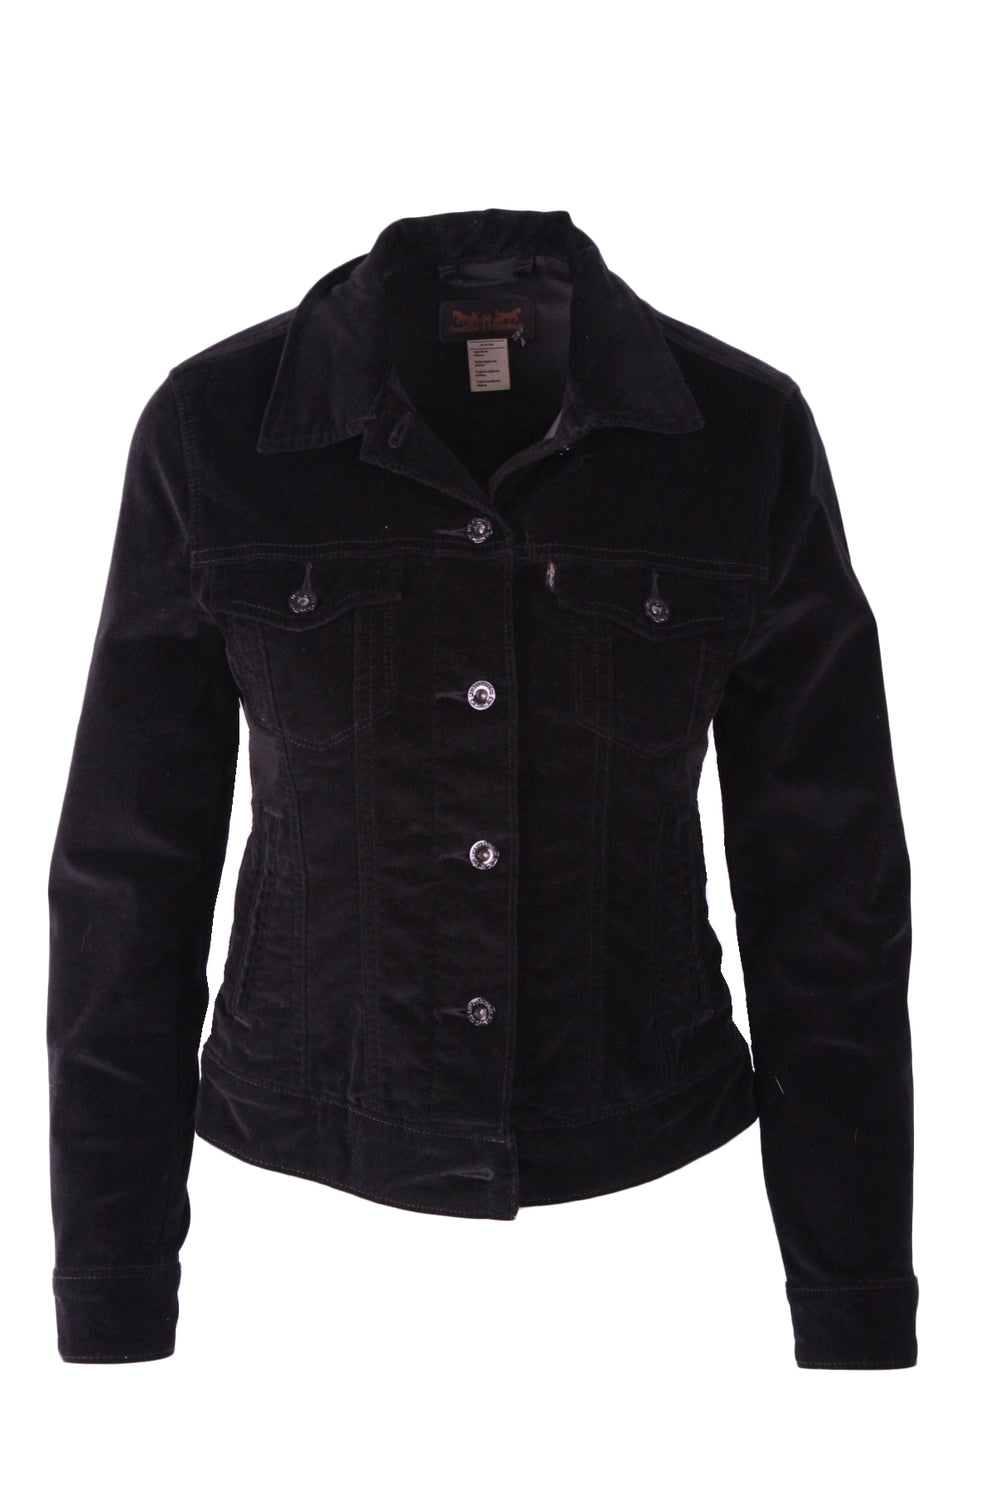 levi's black cropped jacket